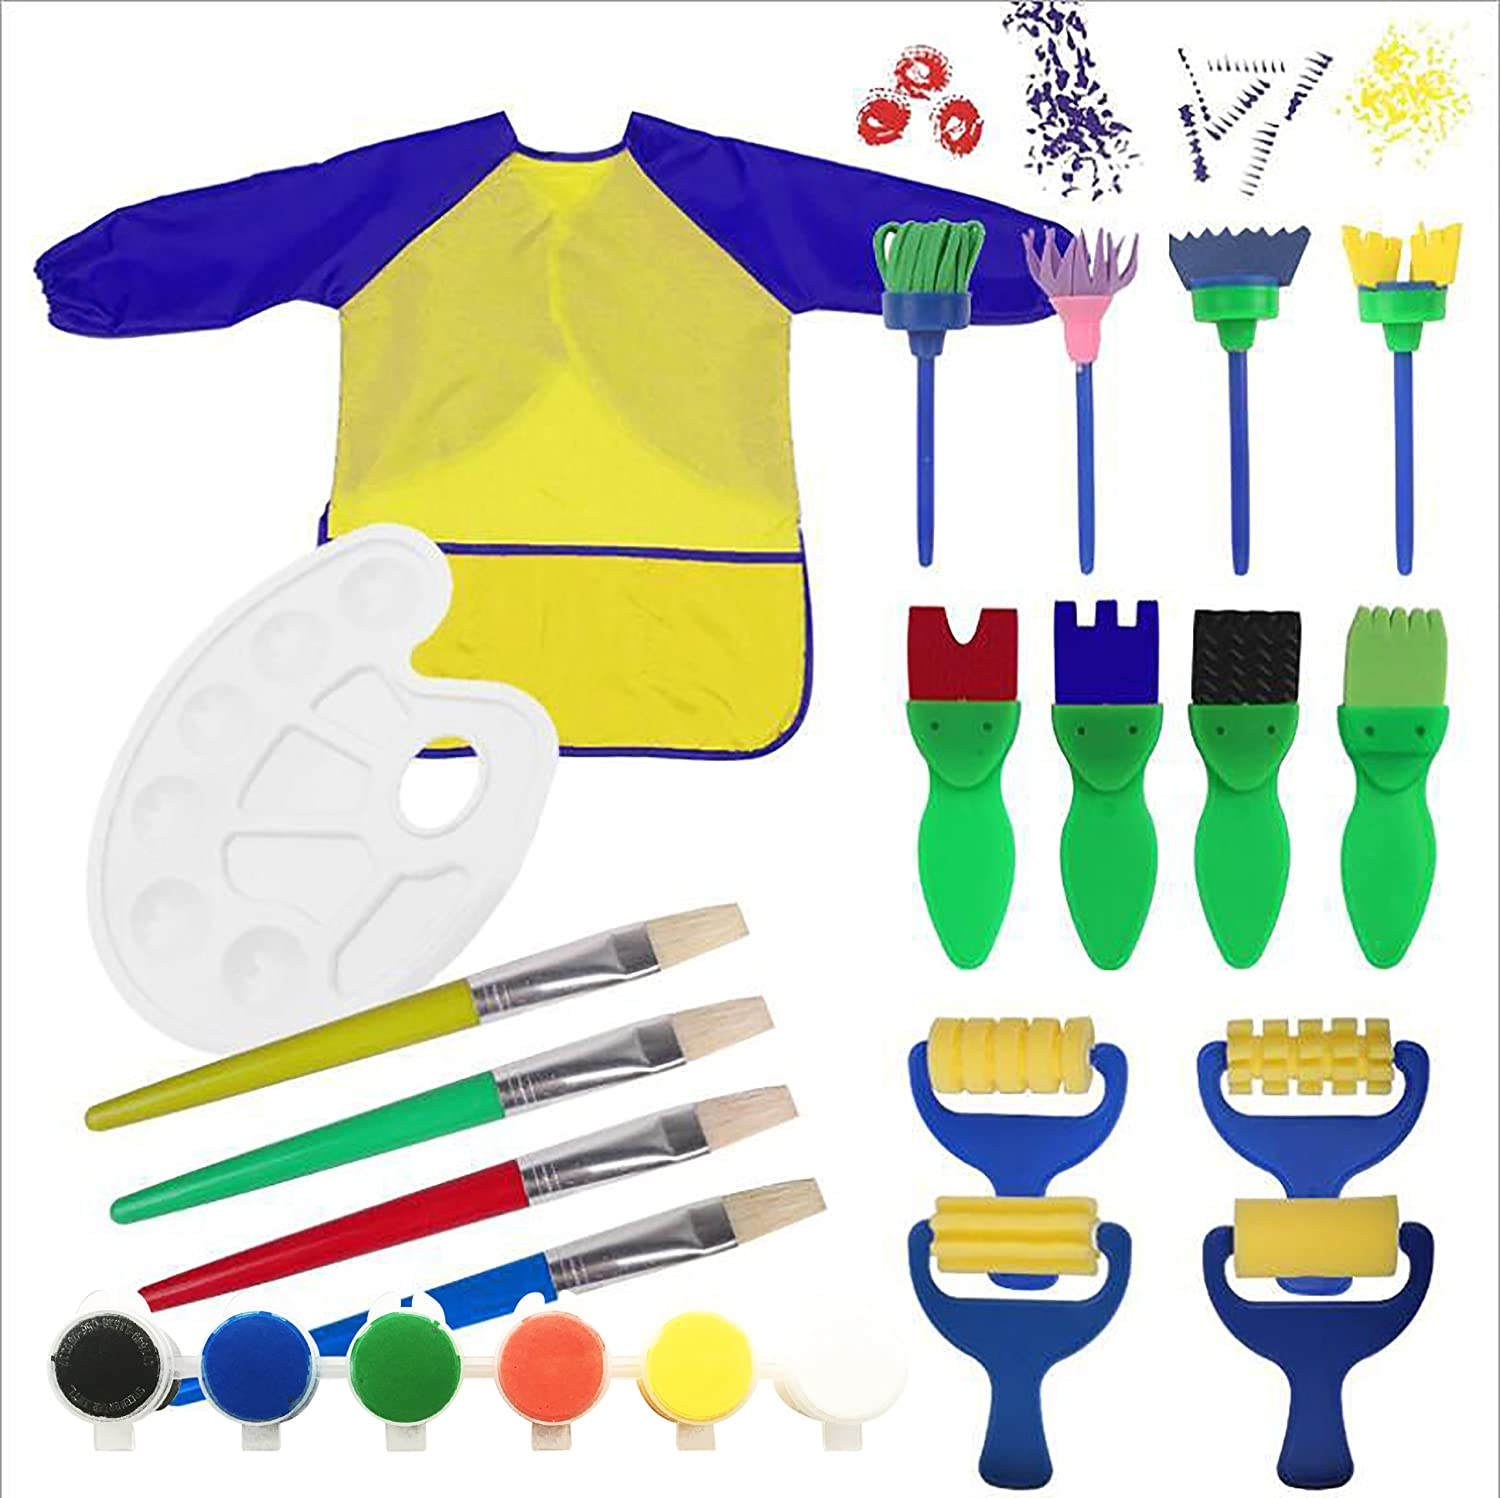 Kids Paint Set Bundle with Yellow/Blue Long Sleeve Art Smock, Brushes, Paints and Palette (19 Items) Prime Kids